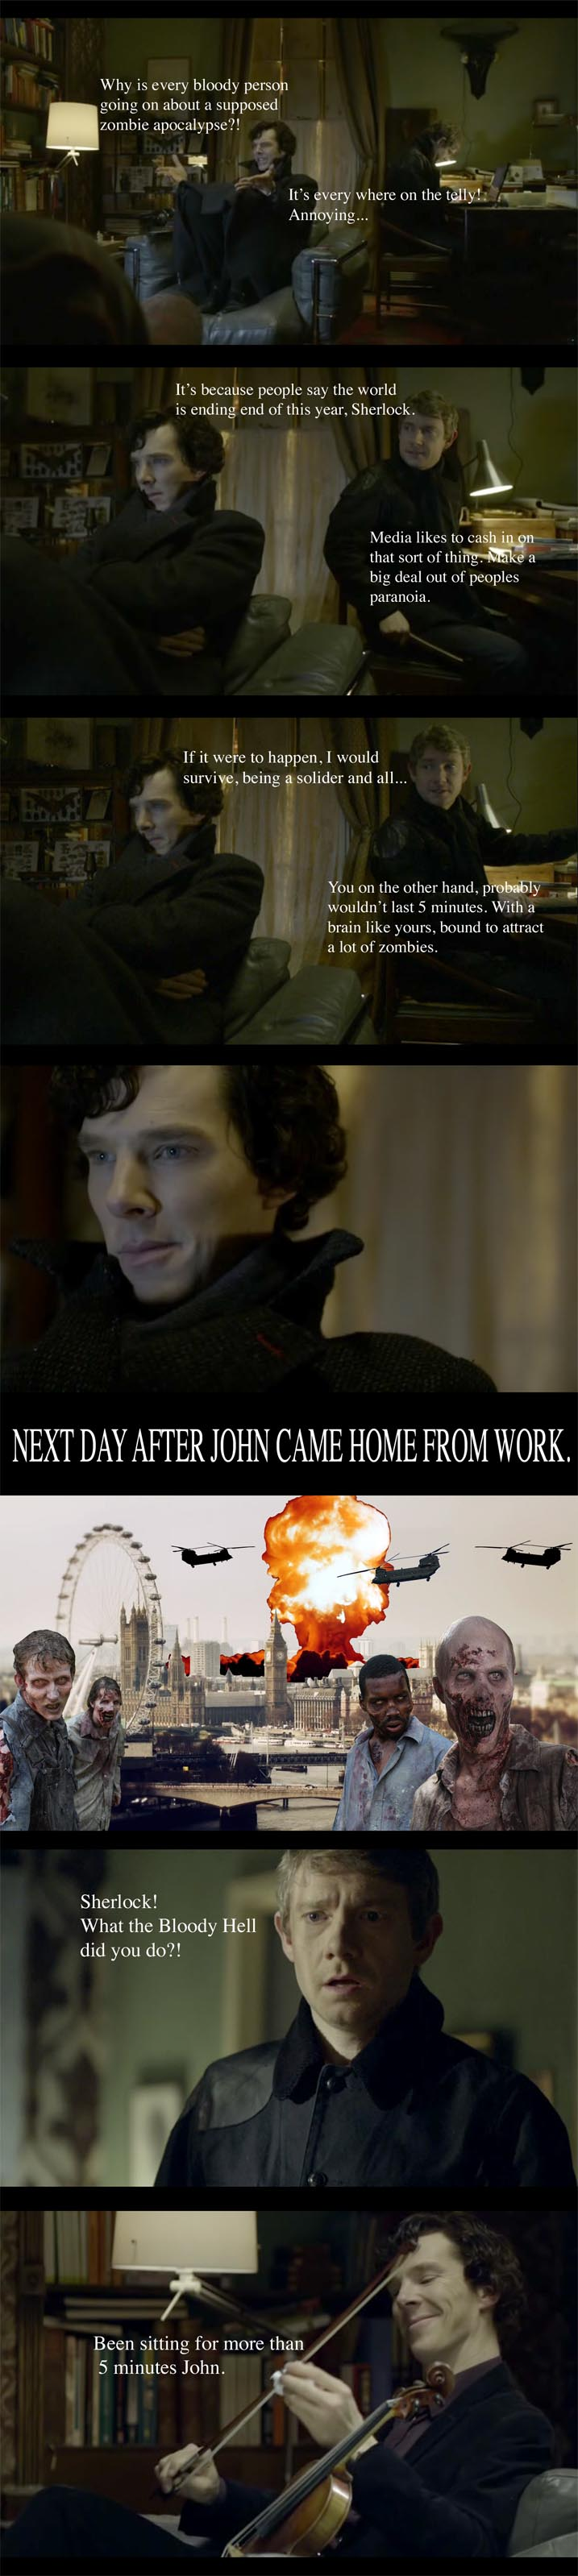 Yes I Think I Could See Sherlock Starting The Zombie Apocalypse